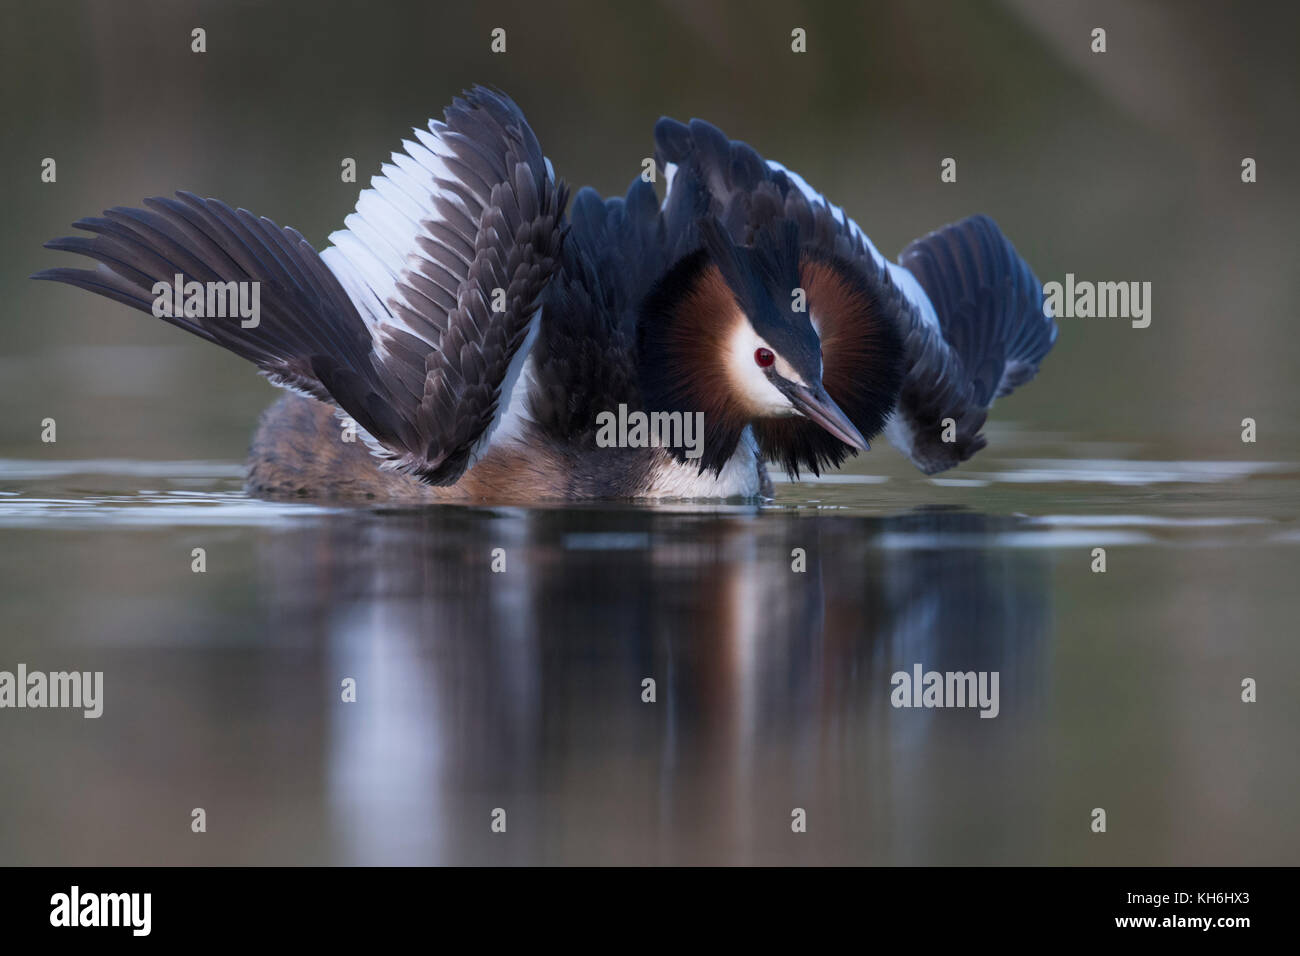 Great Crested Grebe / Haubentaucher ( Podiceps cristatus ) courting in cat display, opening its wings to impress - Stock Image